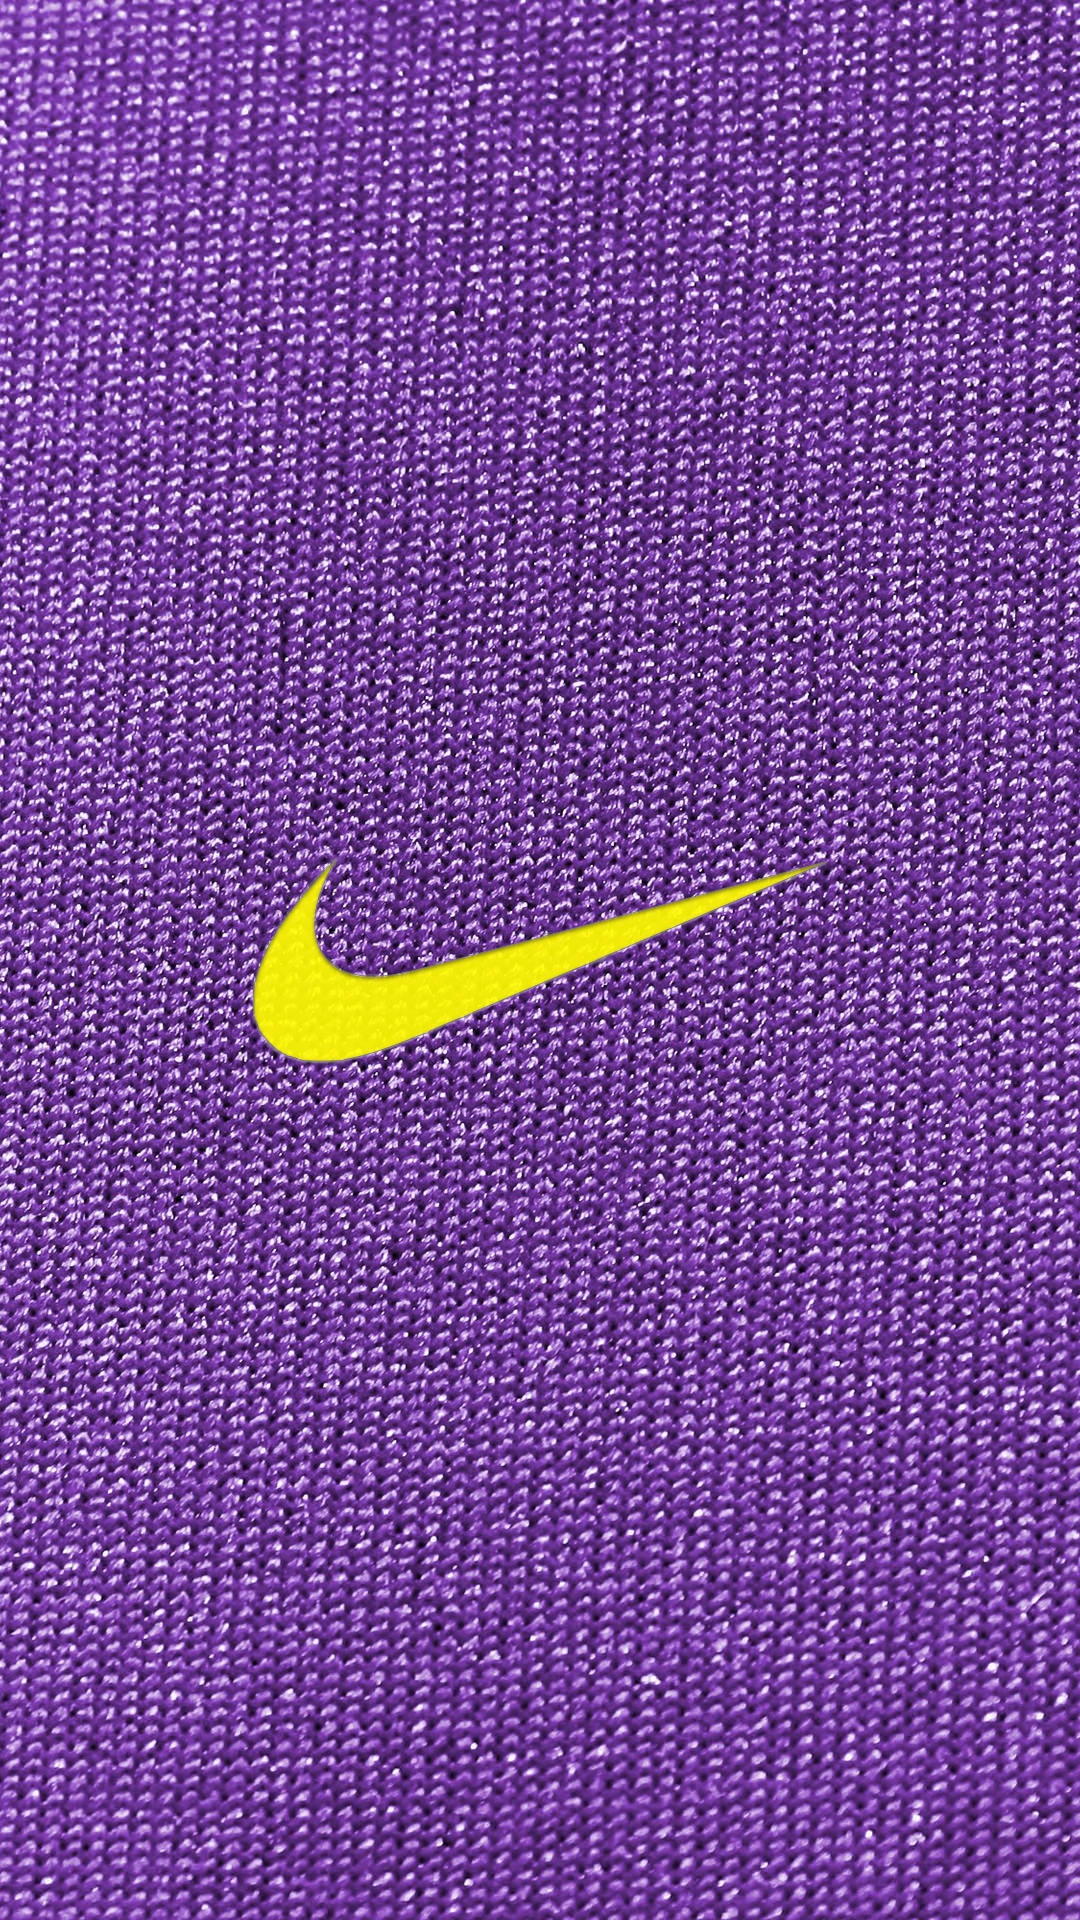 nike17 - 37 NIKE HQ Smartphone Wallpaper Collection